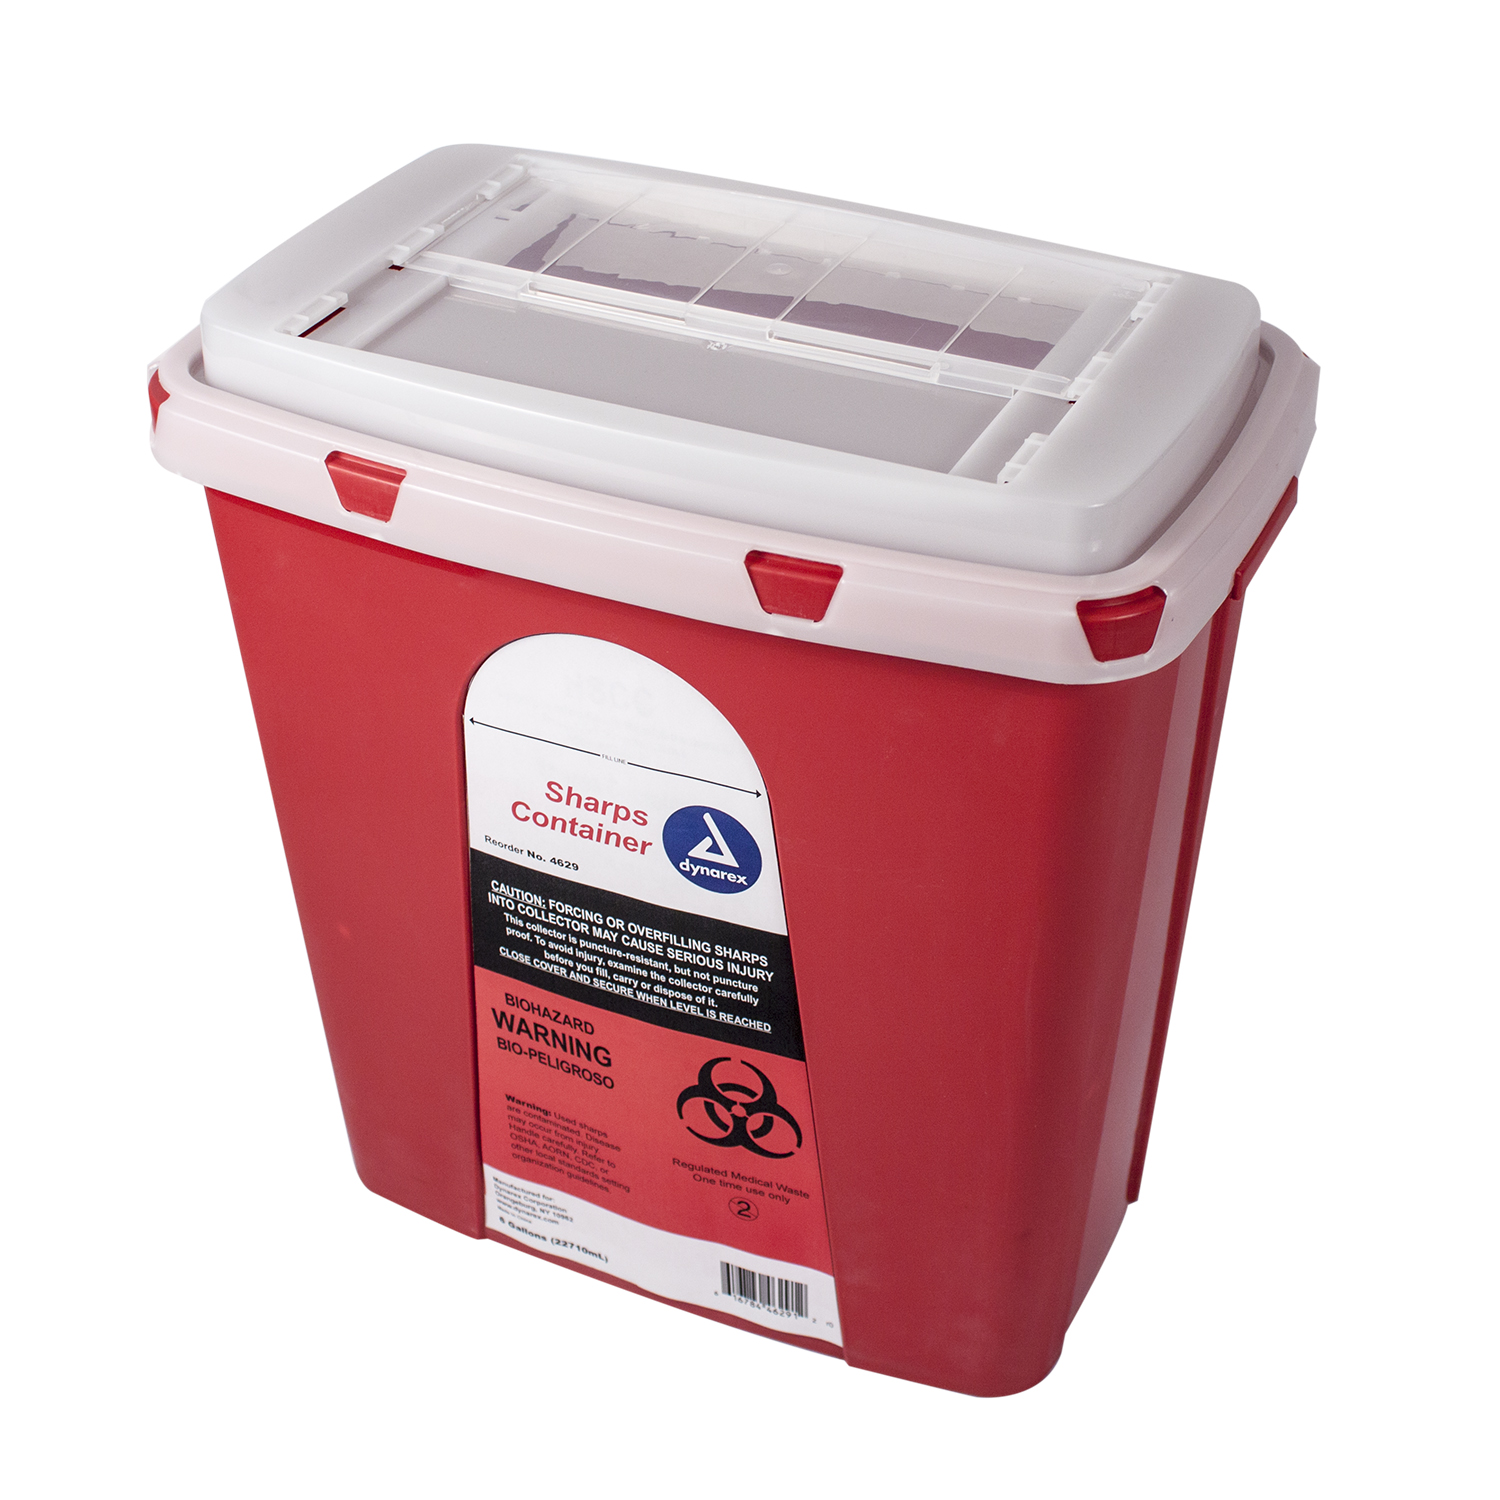 Sharps Containers - 6gal.